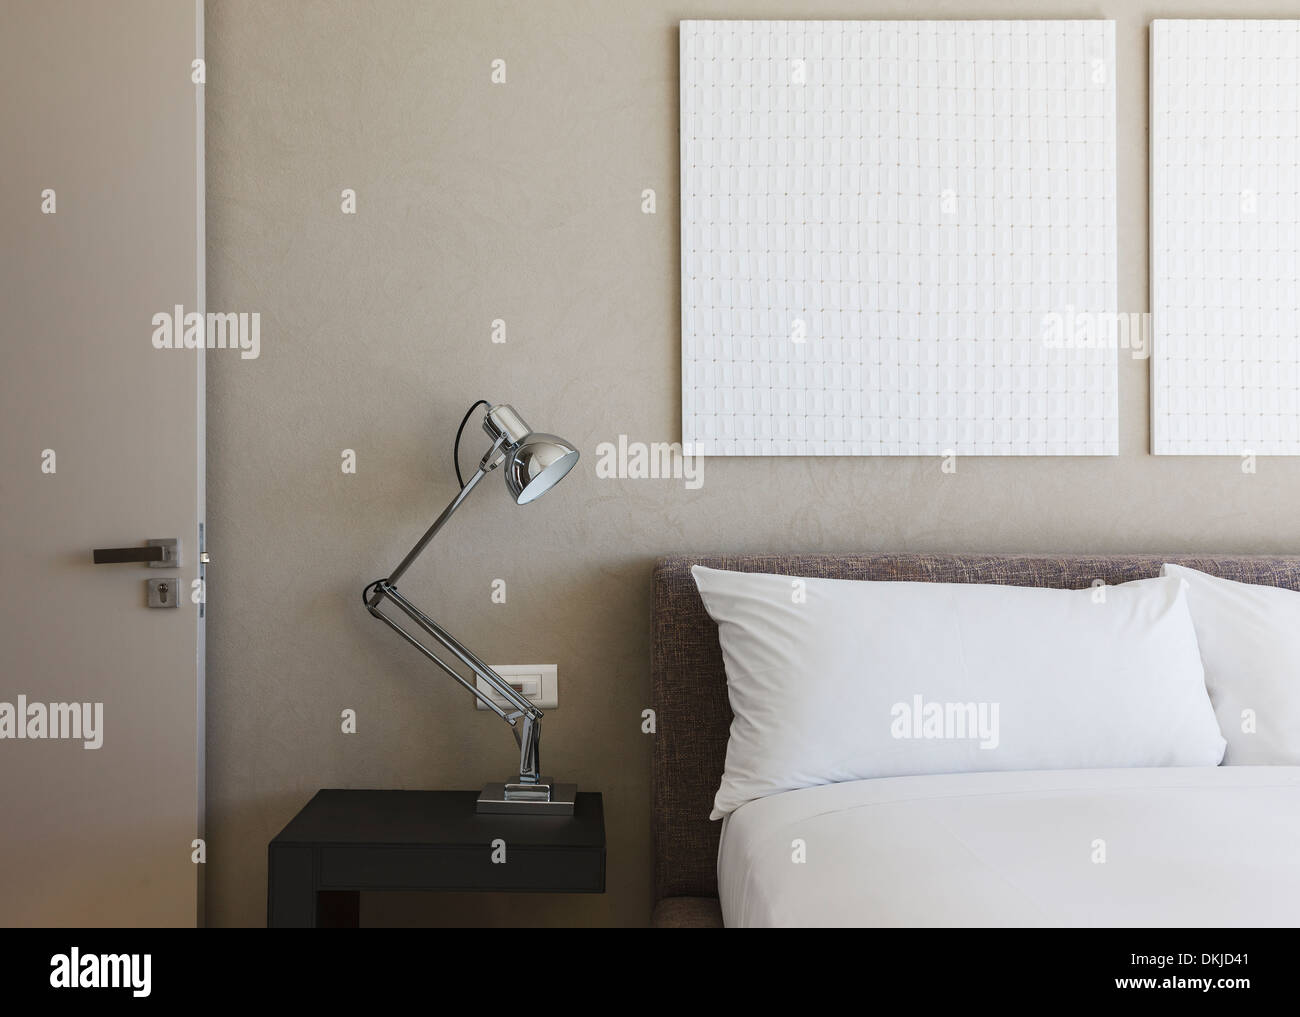 Lamp and wall art in modern bedroom Stock Photo: 63715009 - Alamy